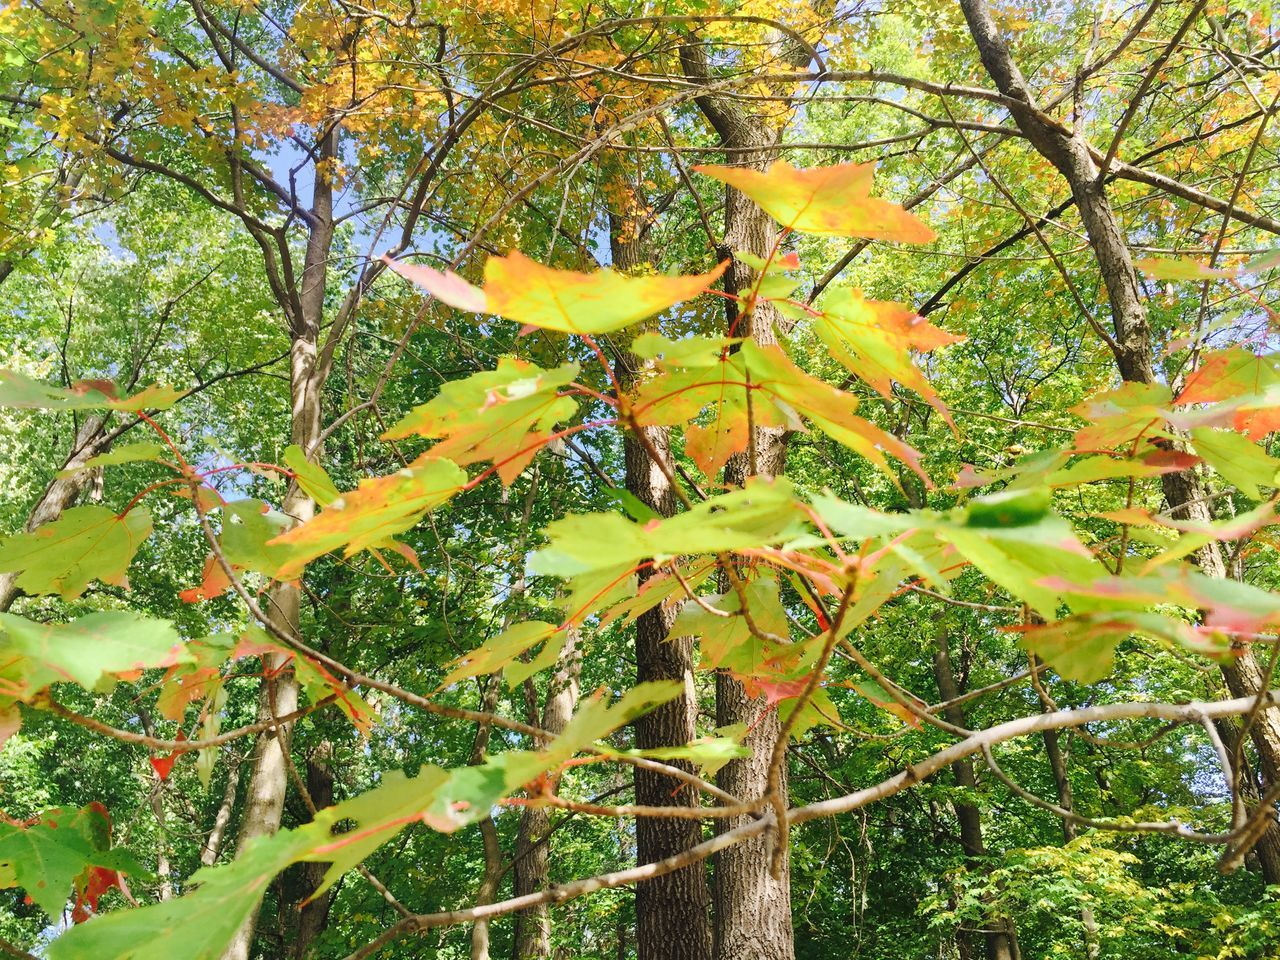 growth, tree, nature, leaf, autumn, branch, beauty in nature, no people, day, outdoors, low angle view, plant, green color, tranquility, yellow, scenics, flower, close-up, freshness, maple